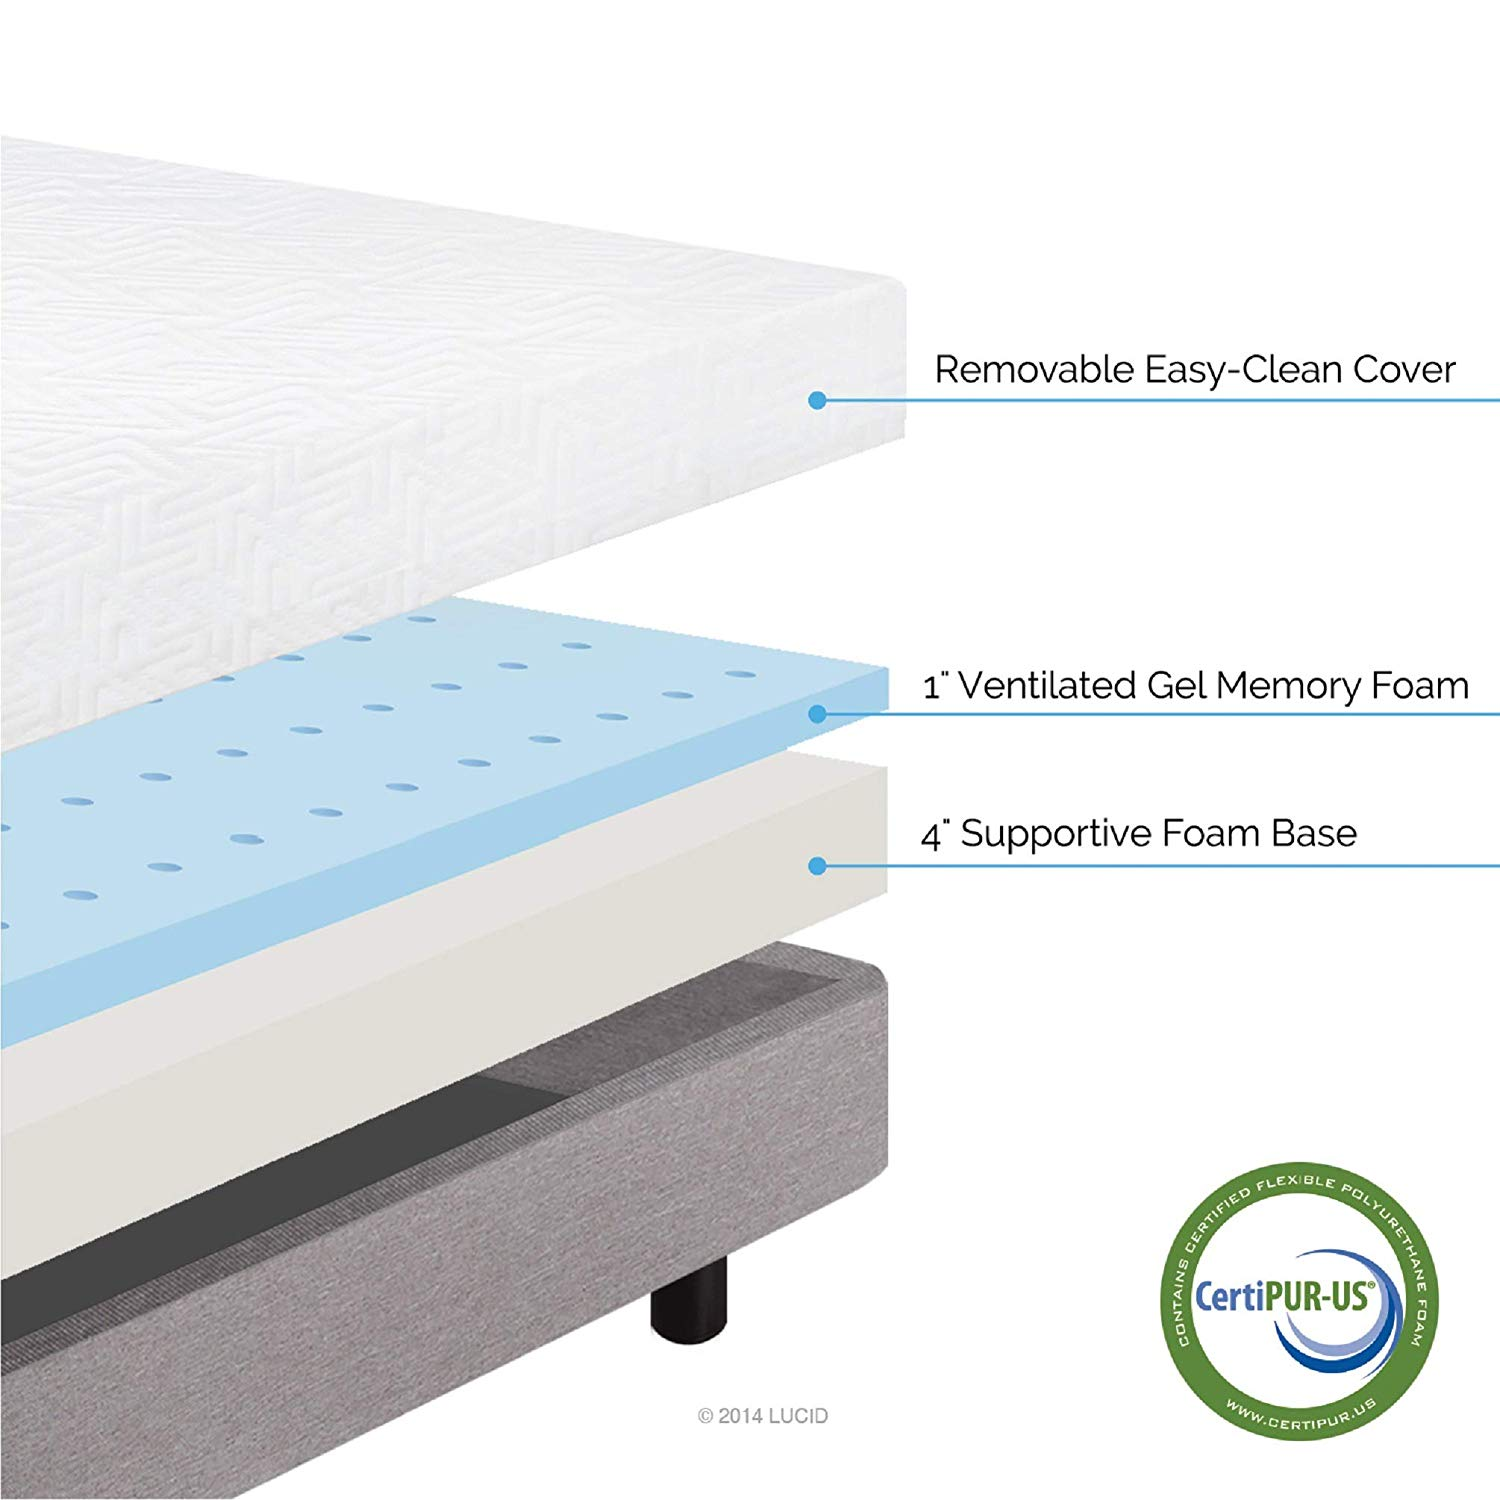 Best Gel Memory foam mattress under 500 budget topratedhomeproducts info